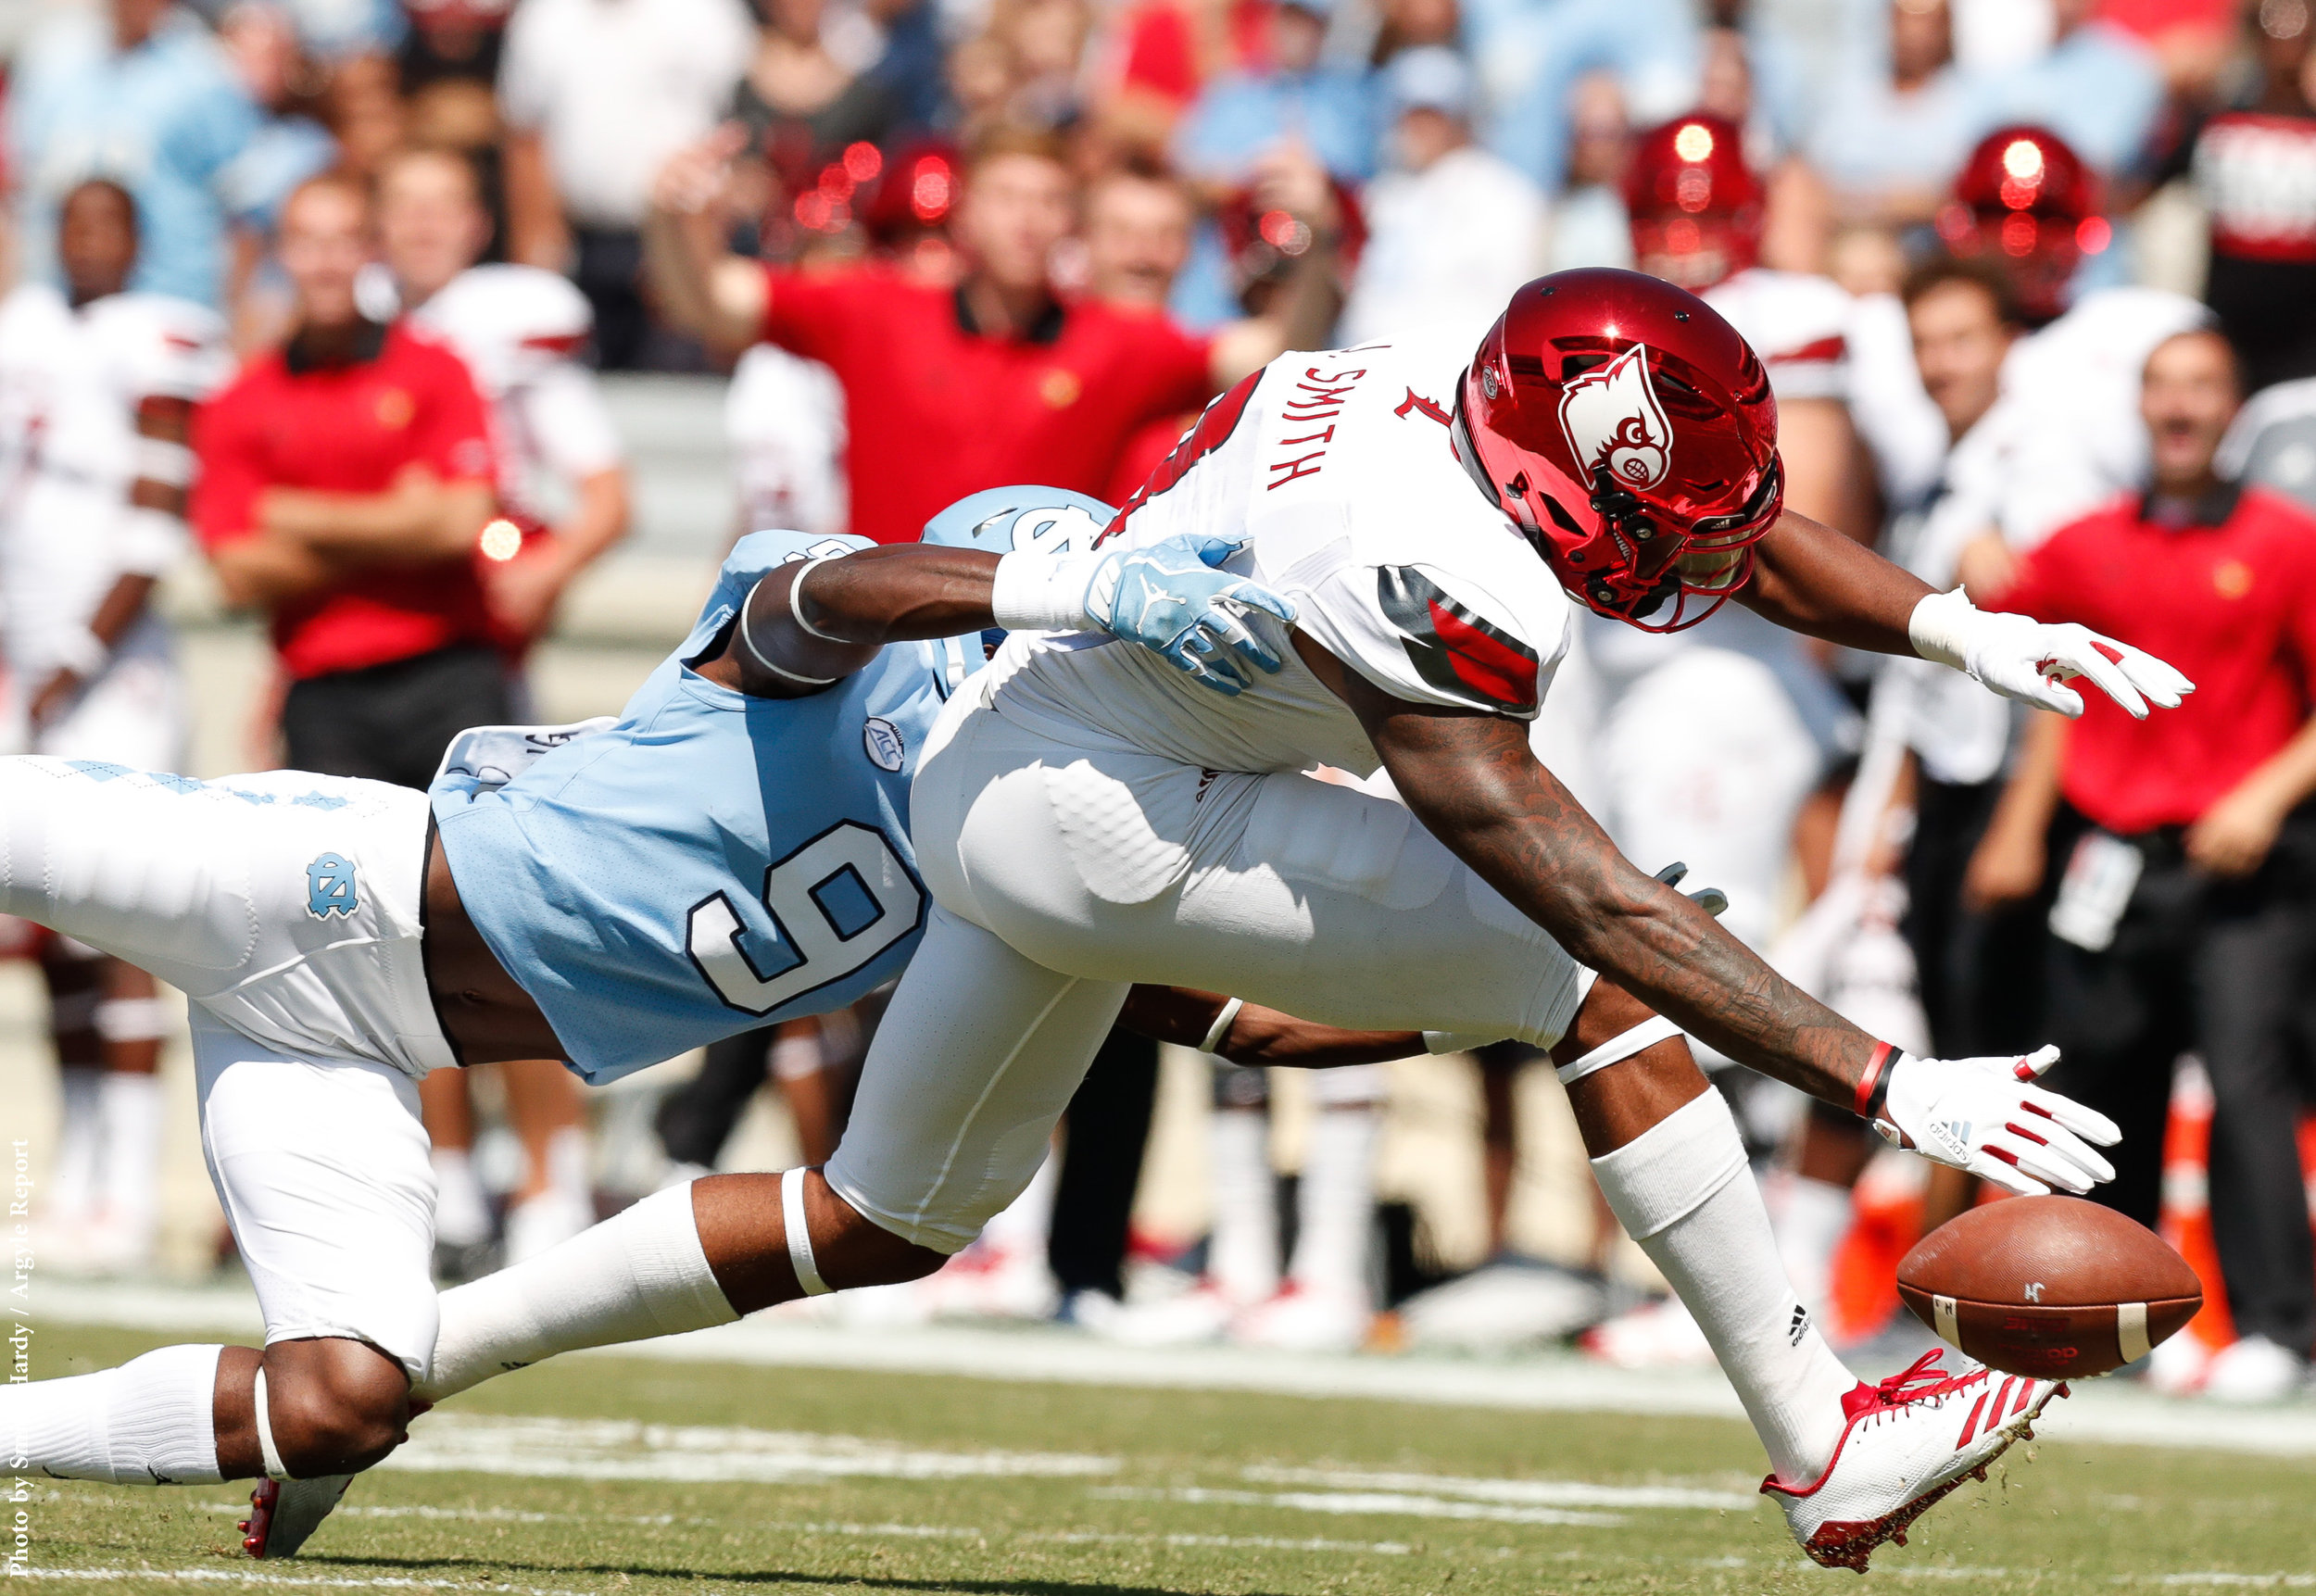 Tarheels vs Cards Football 2017 (2 of 4).jpg